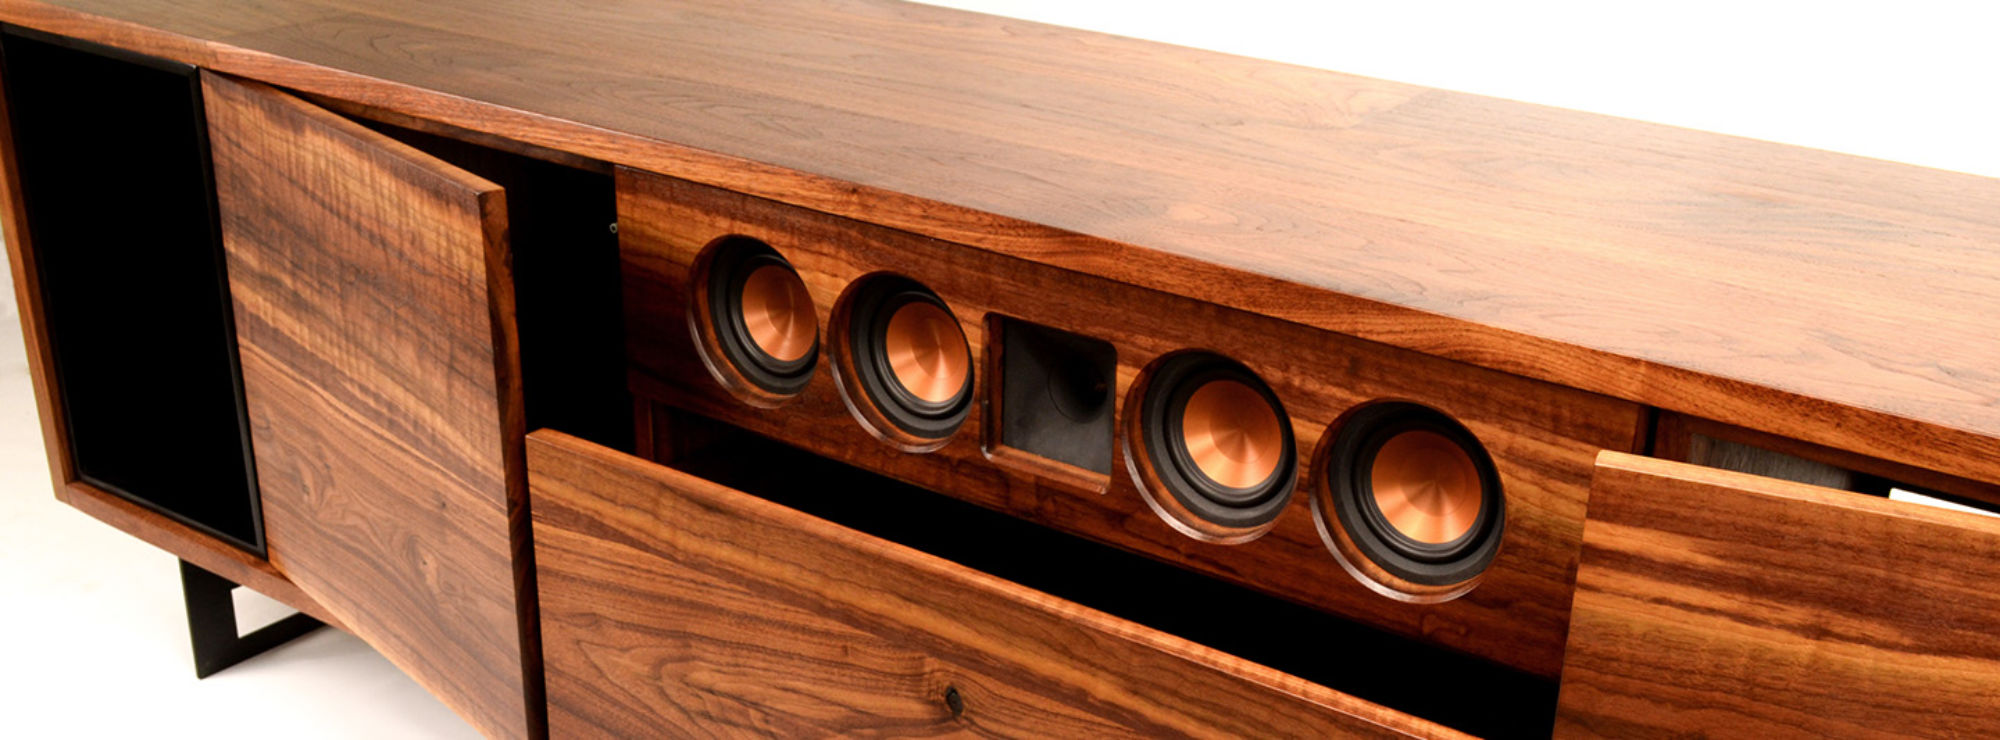 Custom built cabinet for Klipsch speakers in a home theater